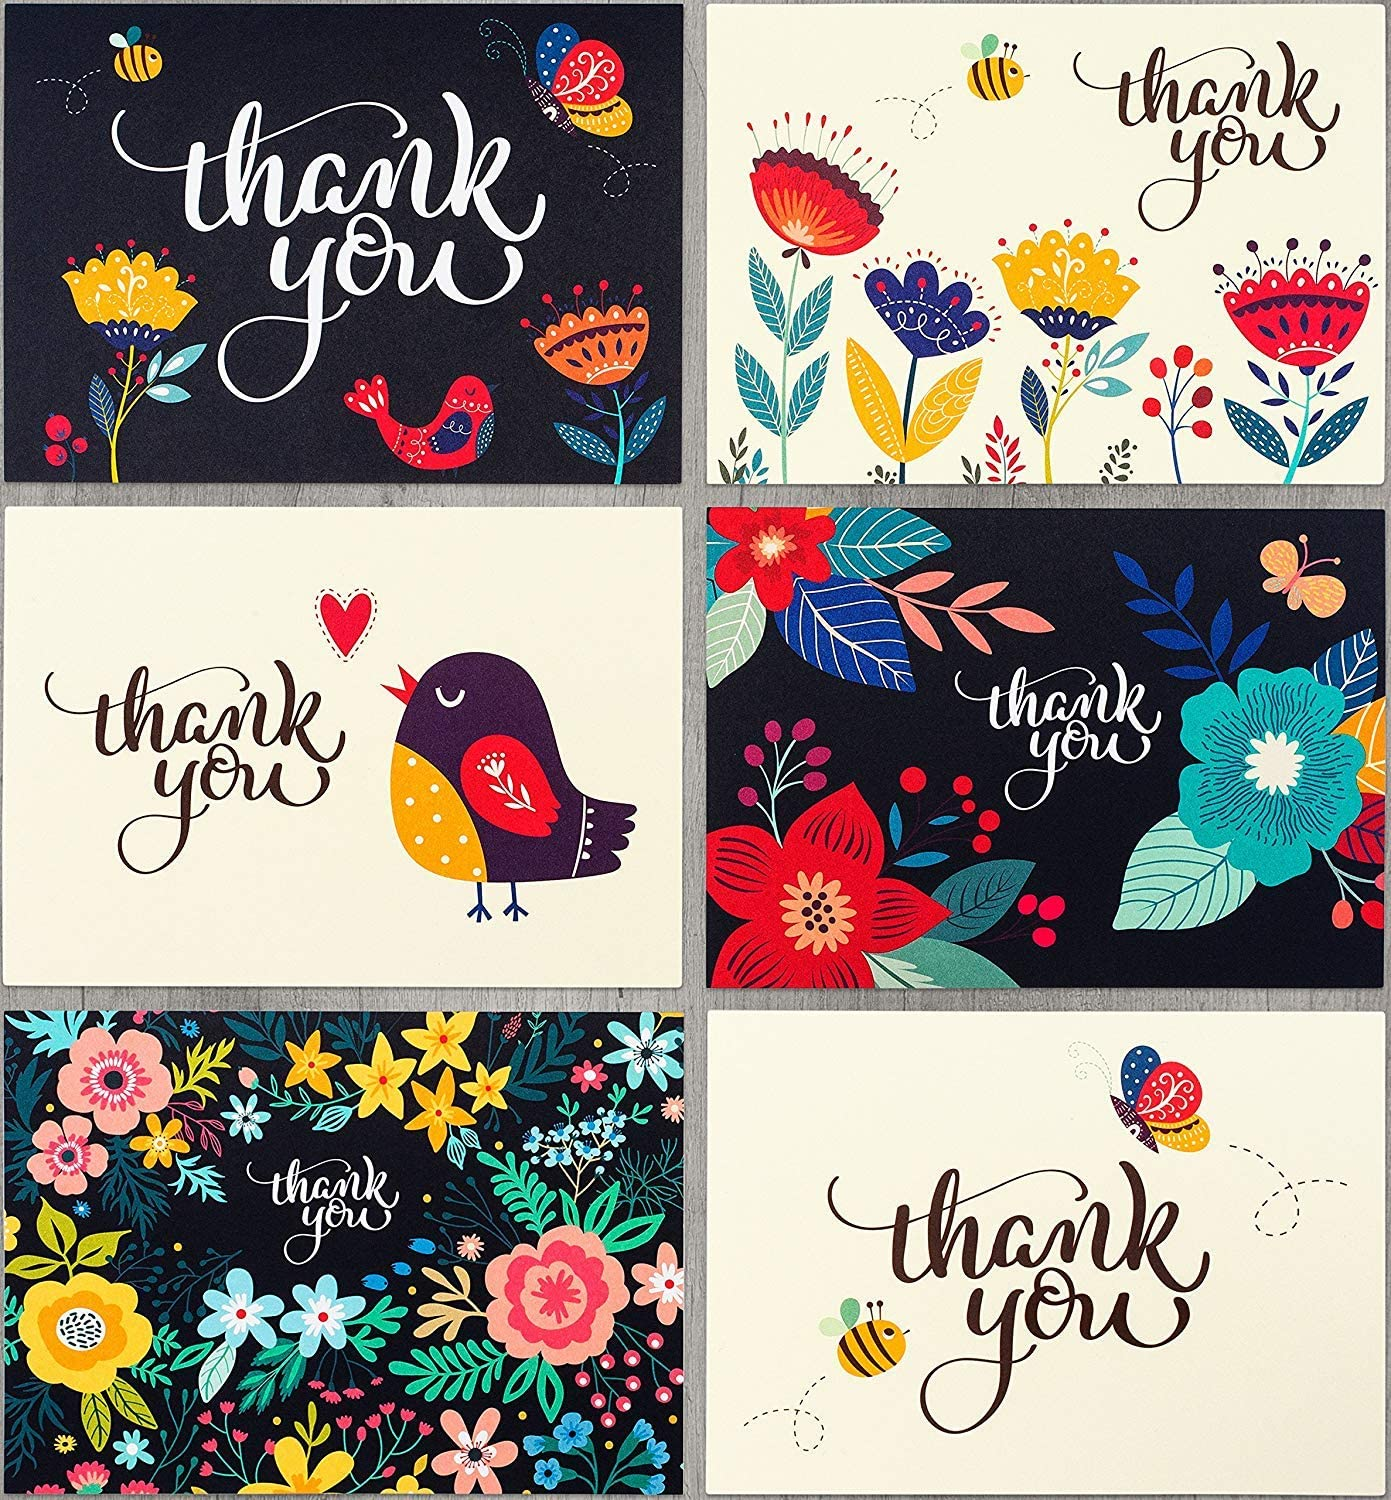 Spark Ink Super beauty Max 72% OFF product restock quality top 36 Floral Thank You Cards Envelopes with Elegant Than